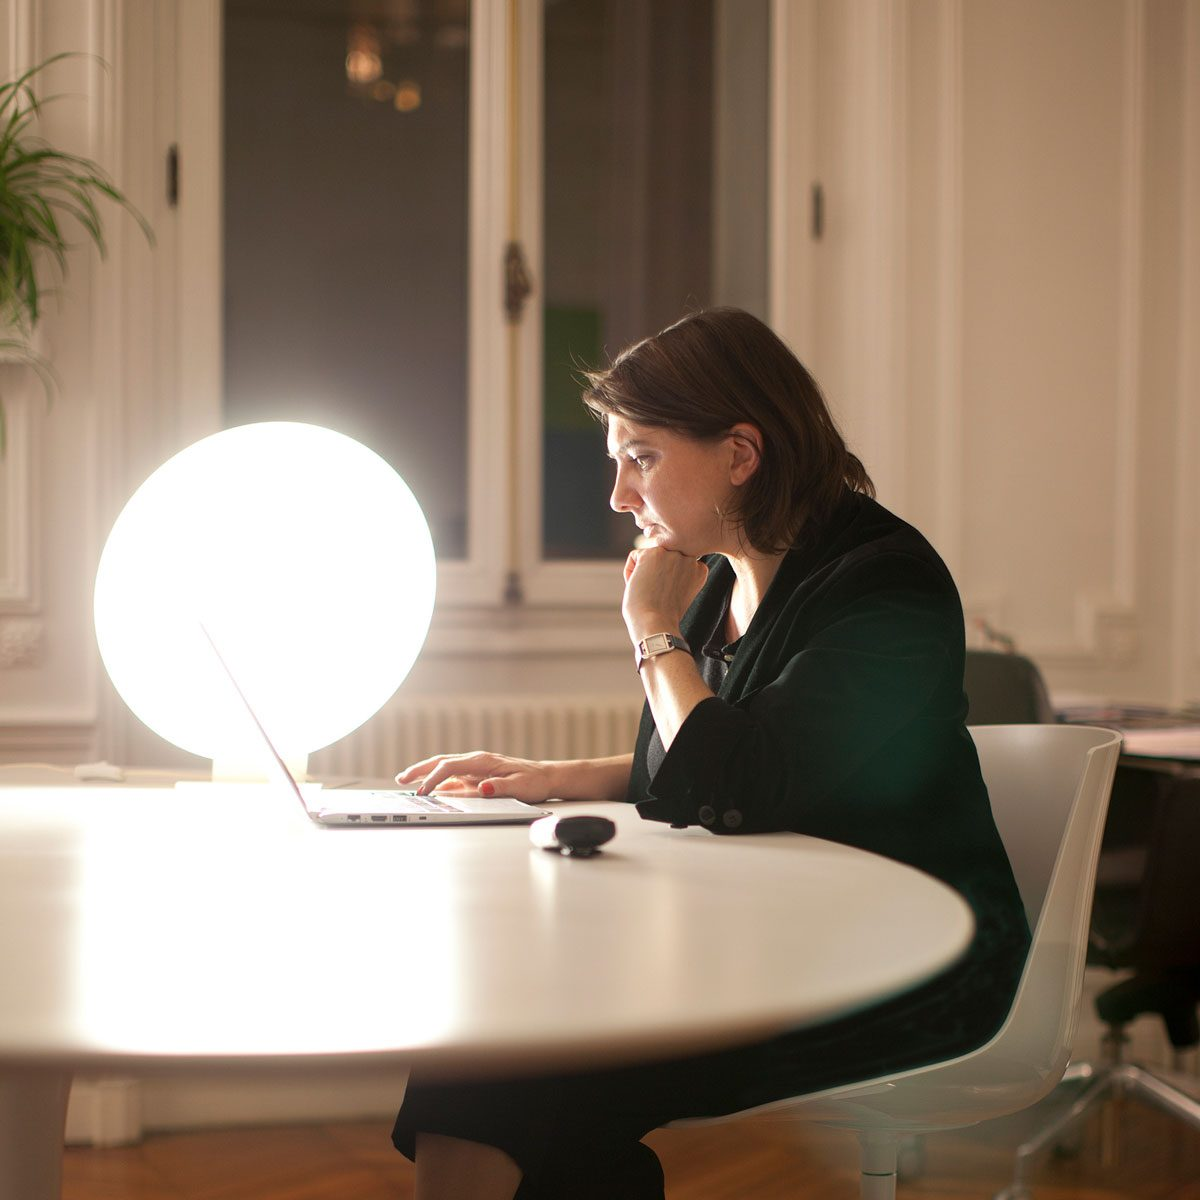 Woman sitting at a table with a light therapy lamp